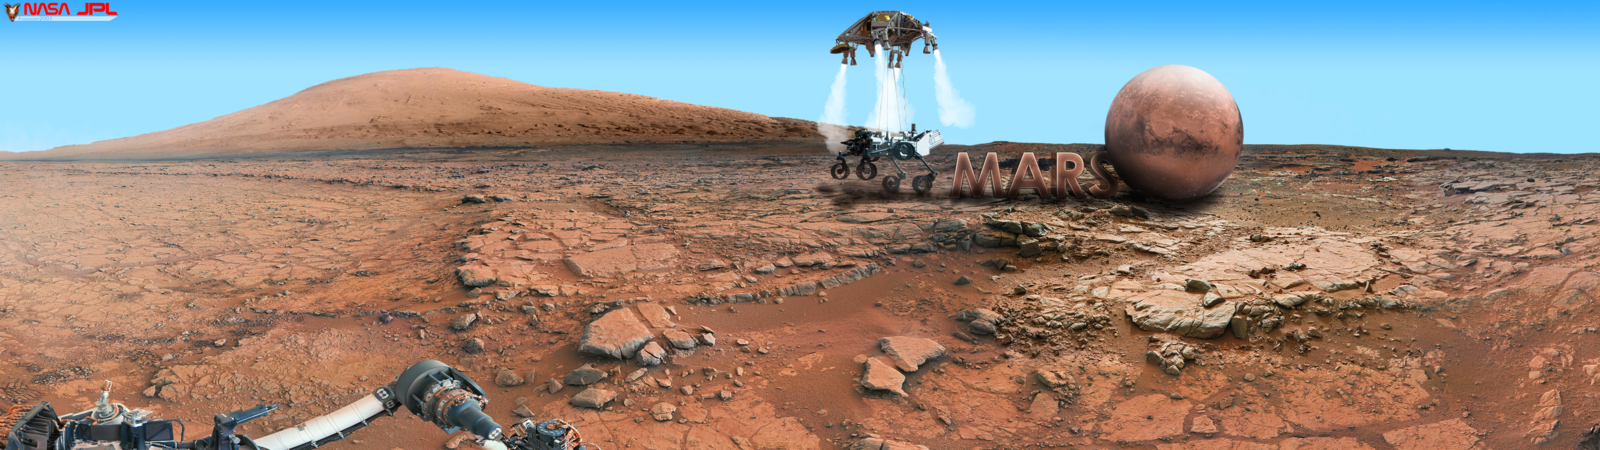 Mars Wallpaper Curiosity Rover Dual Monitor 2 by foxgguy2001 on 1600x450